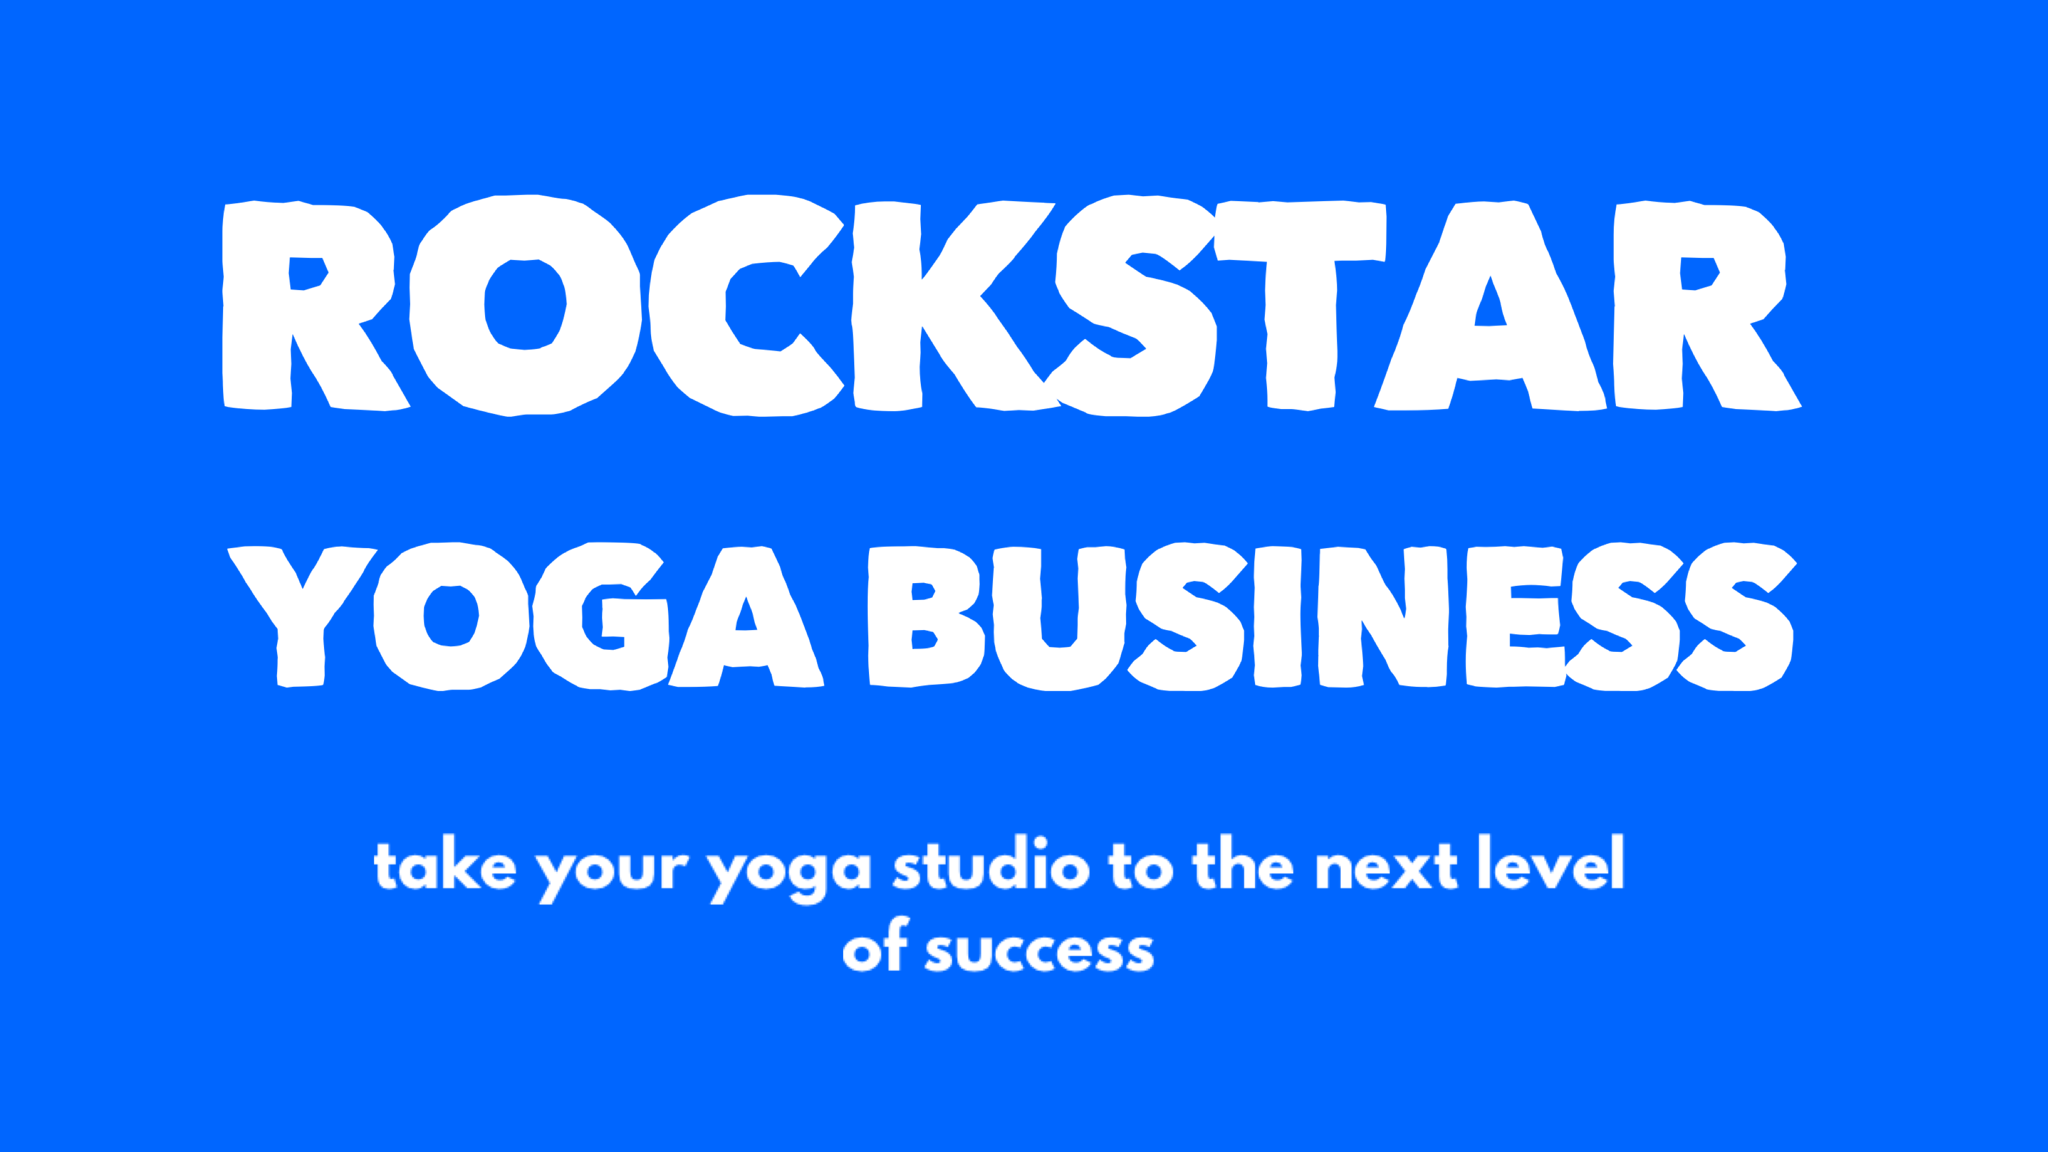 Rockstar Yoga Business for Yoga Studio Owners